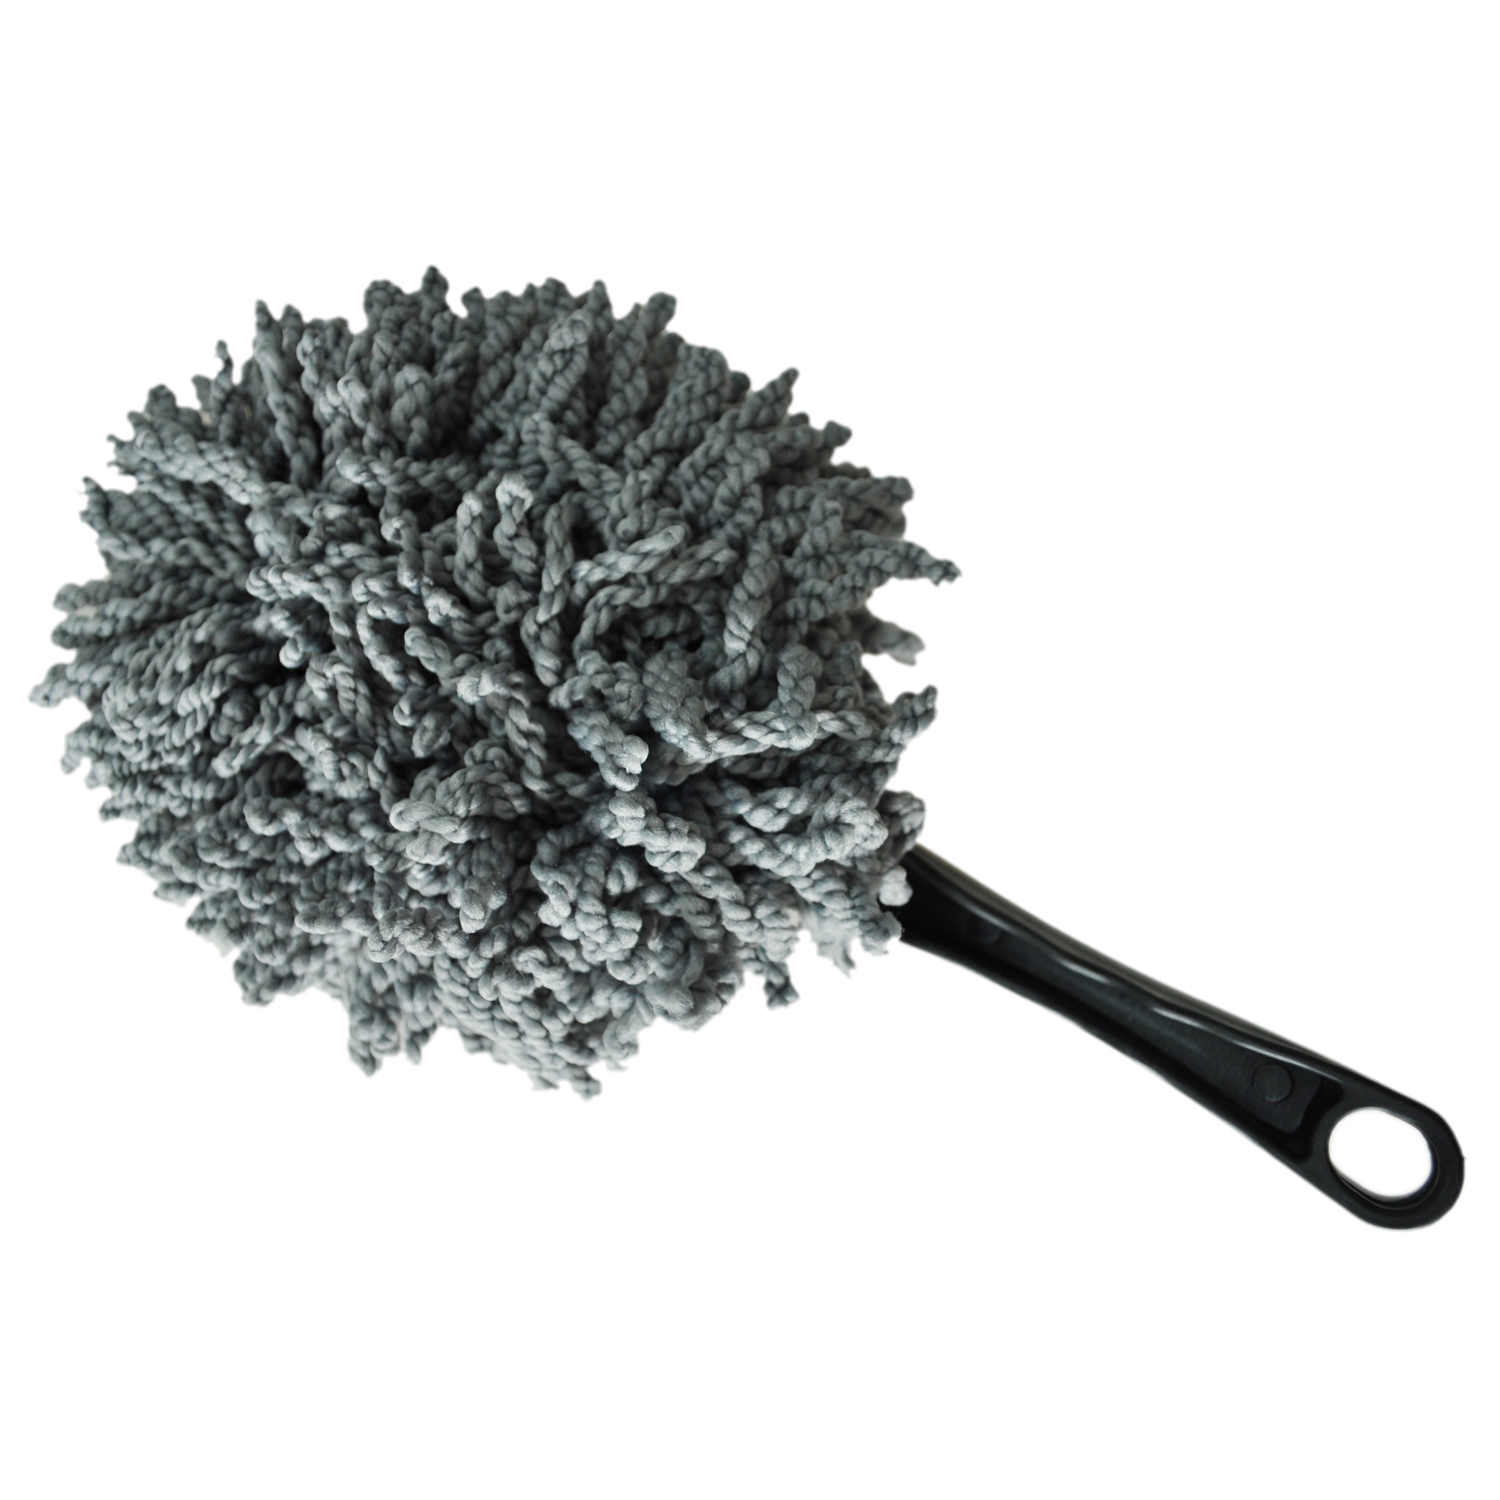 5x car distance dust cleaning duster with grip gray dw ebay. Black Bedroom Furniture Sets. Home Design Ideas